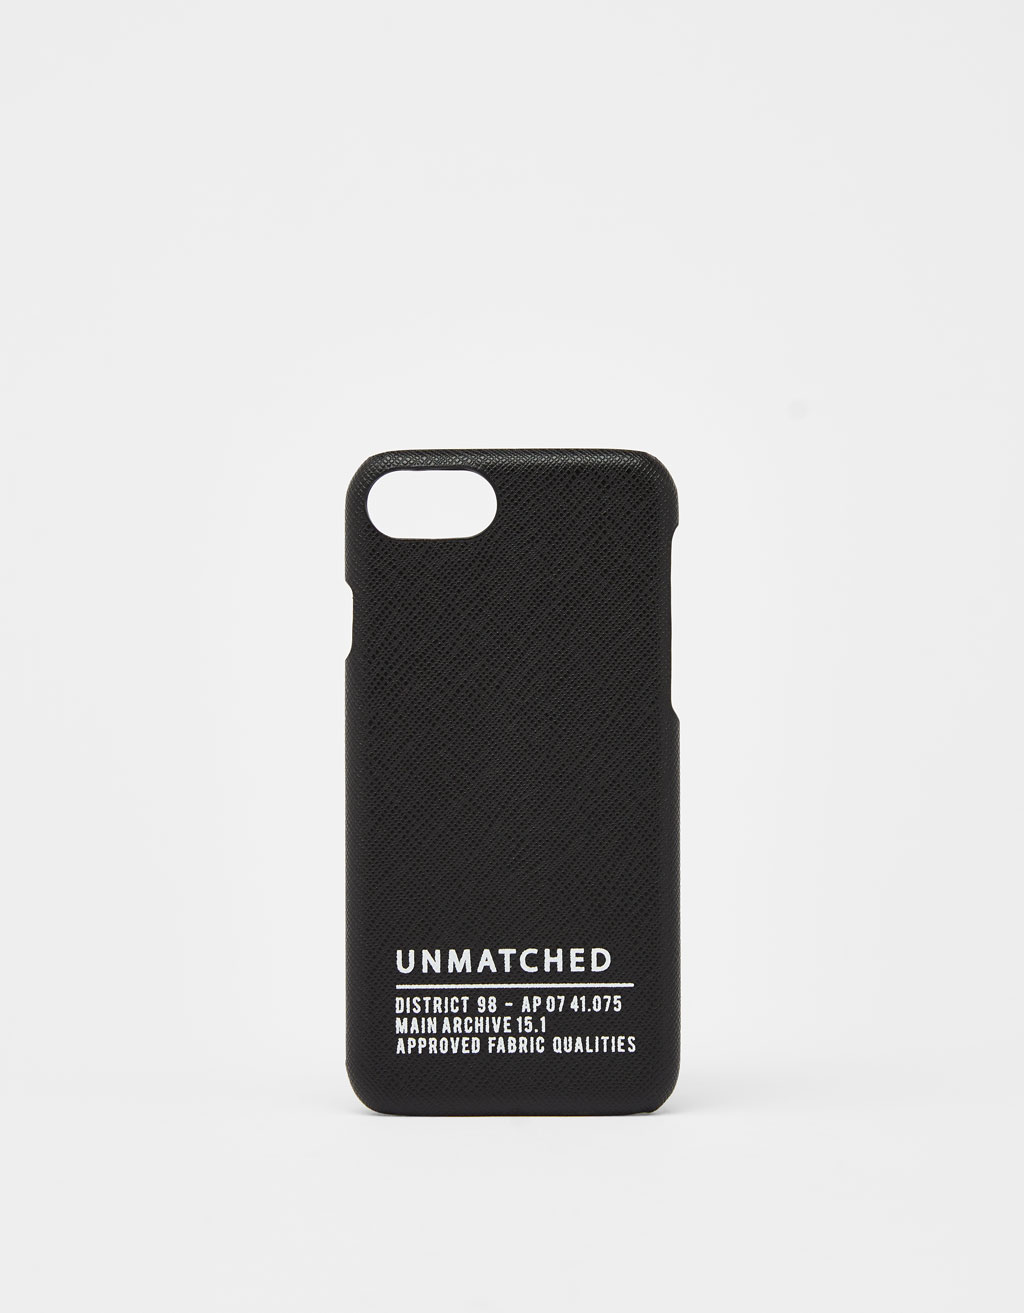 Cover Unmatched iPhone 6 / 6S / 7 / 8